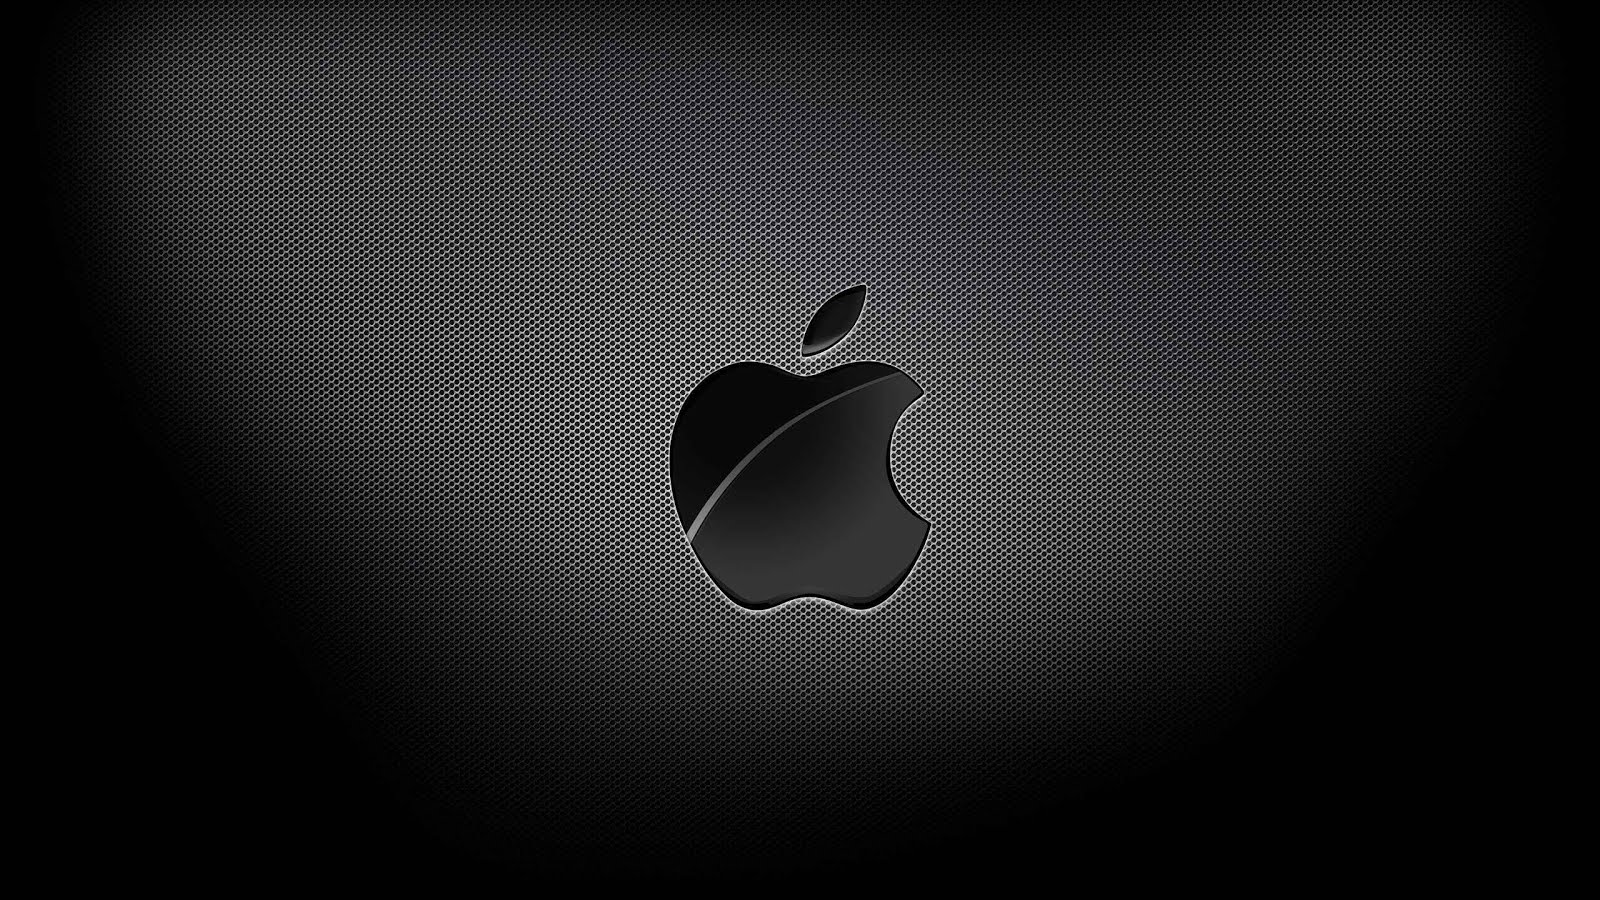 89 Apple Mac Wallpaper Hd Quality